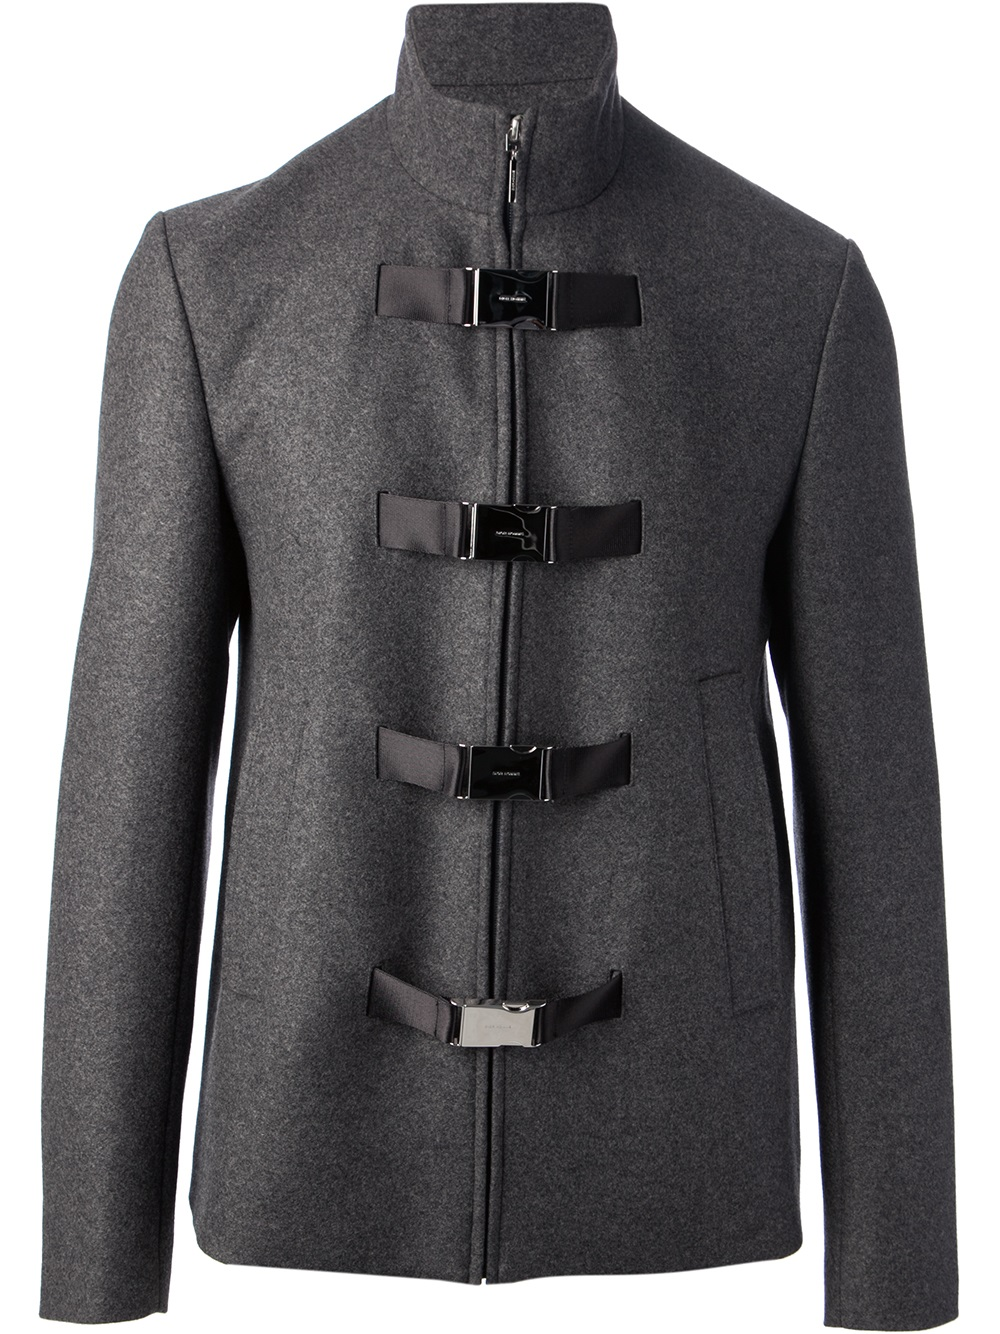 Dior homme Military Jacket in Gray for Men | Lyst